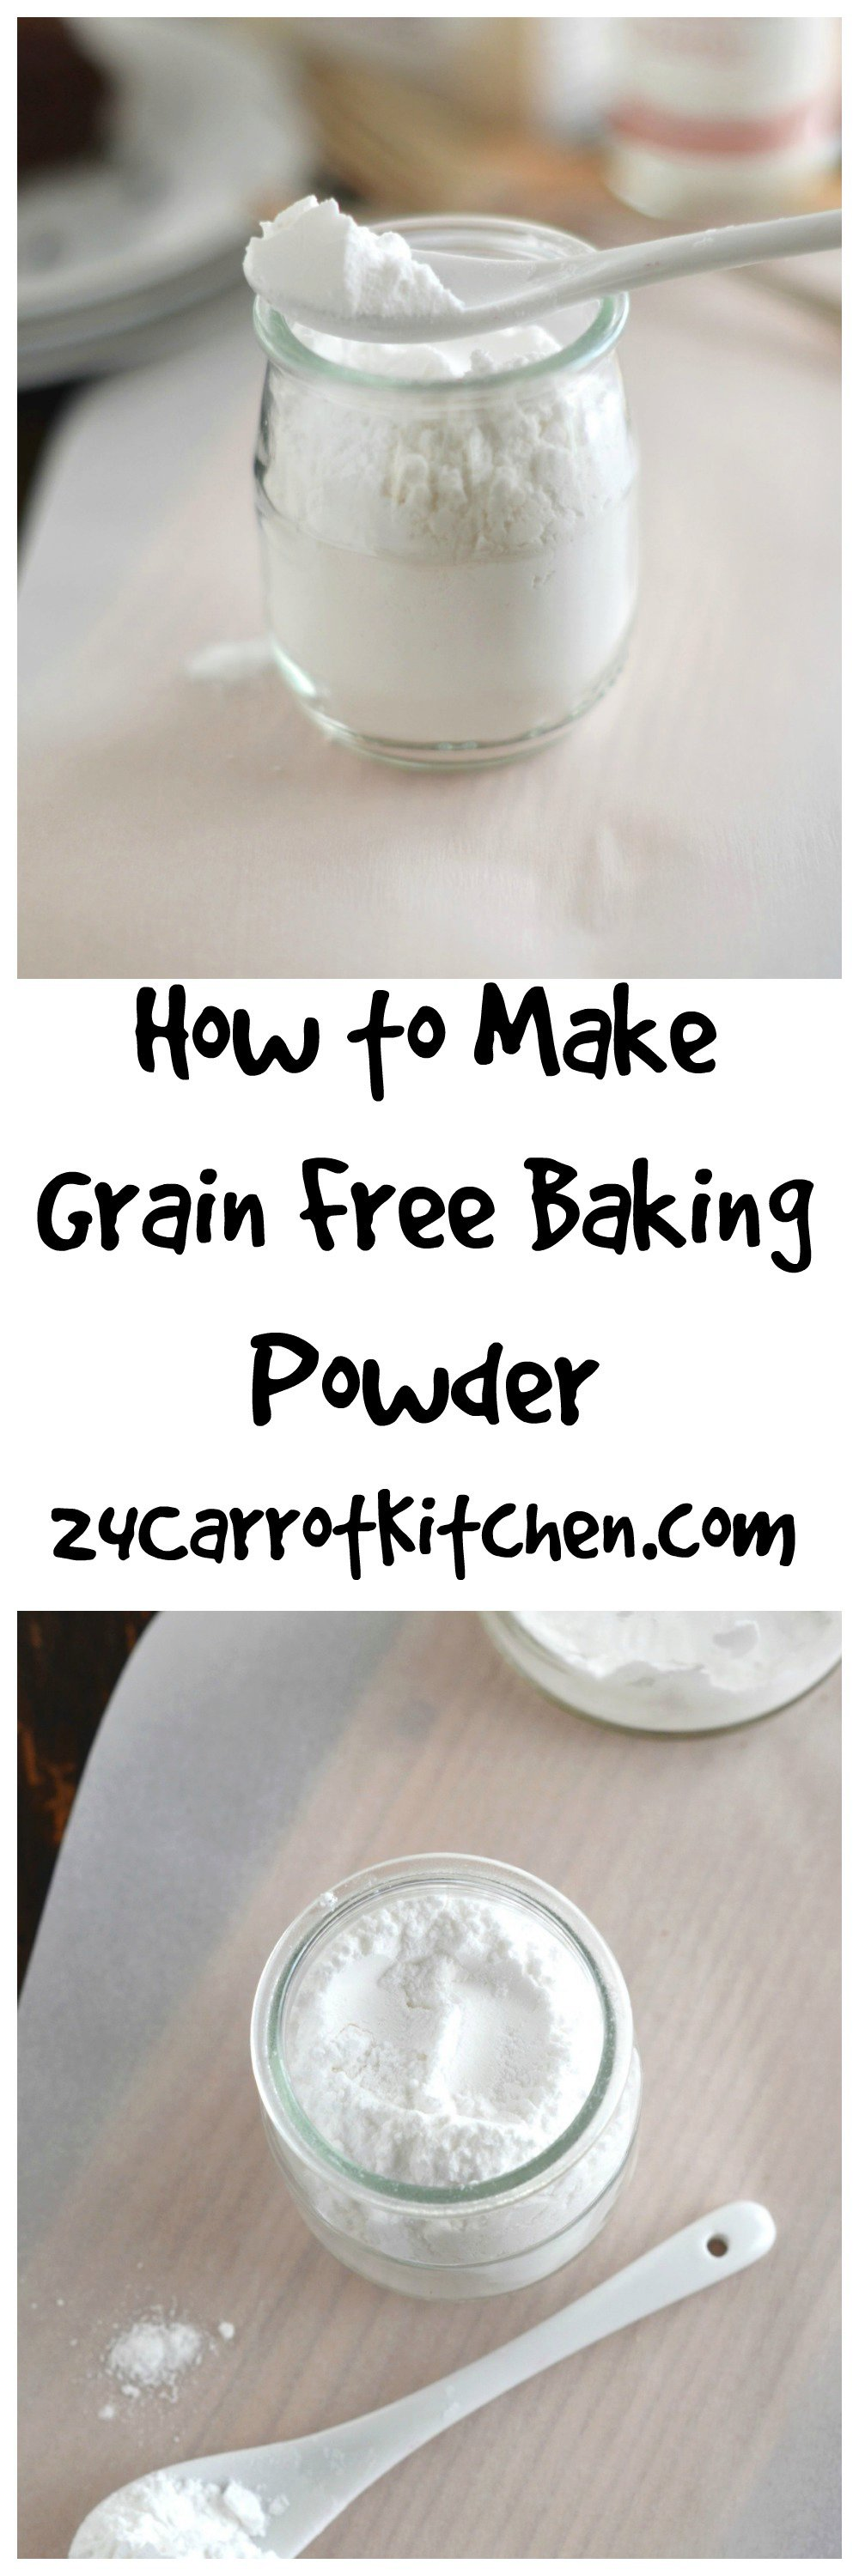 How to Make Your Gluten Free Baking Powder - Easy!